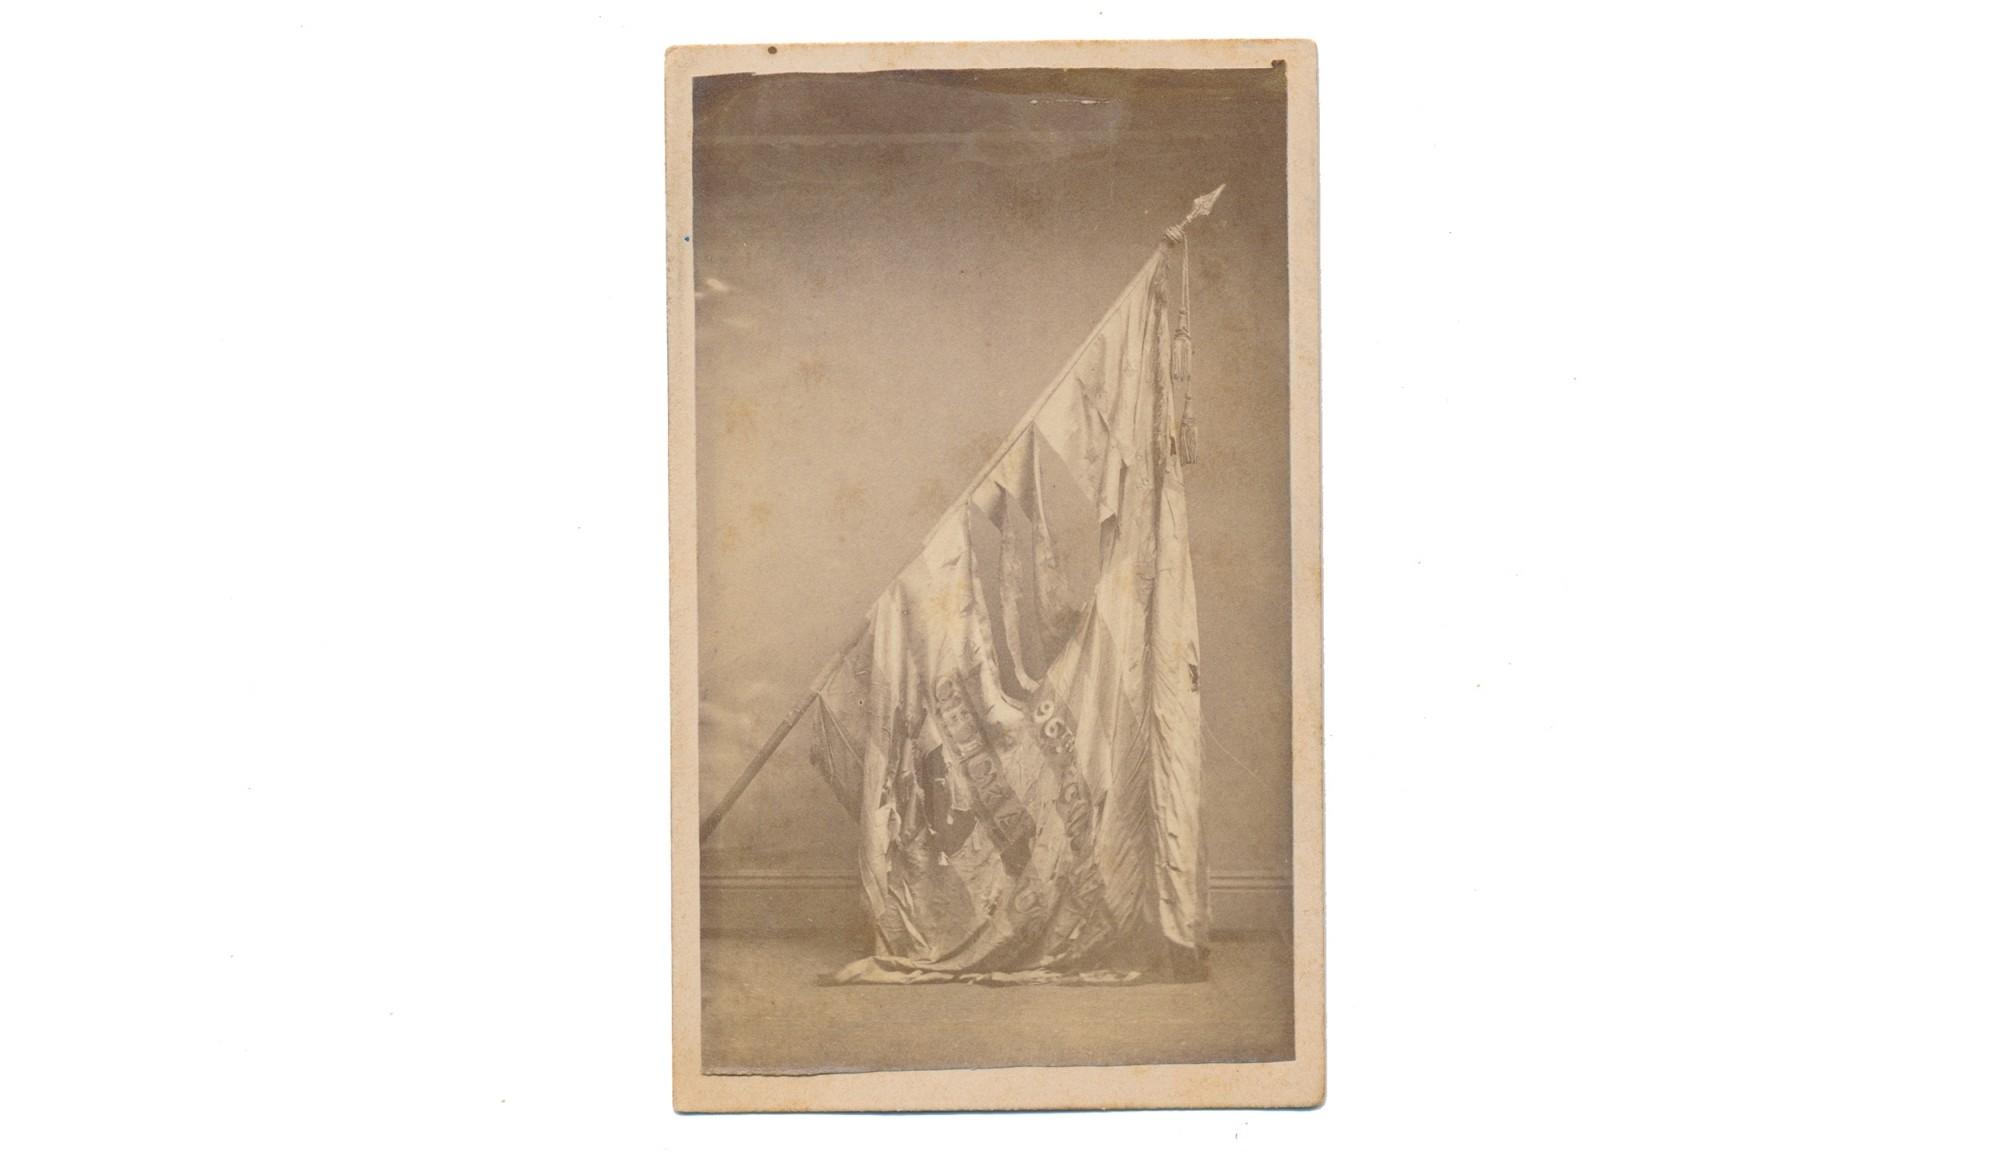 CDV OF 96TH ILLINOIS NATIONAL COLORS